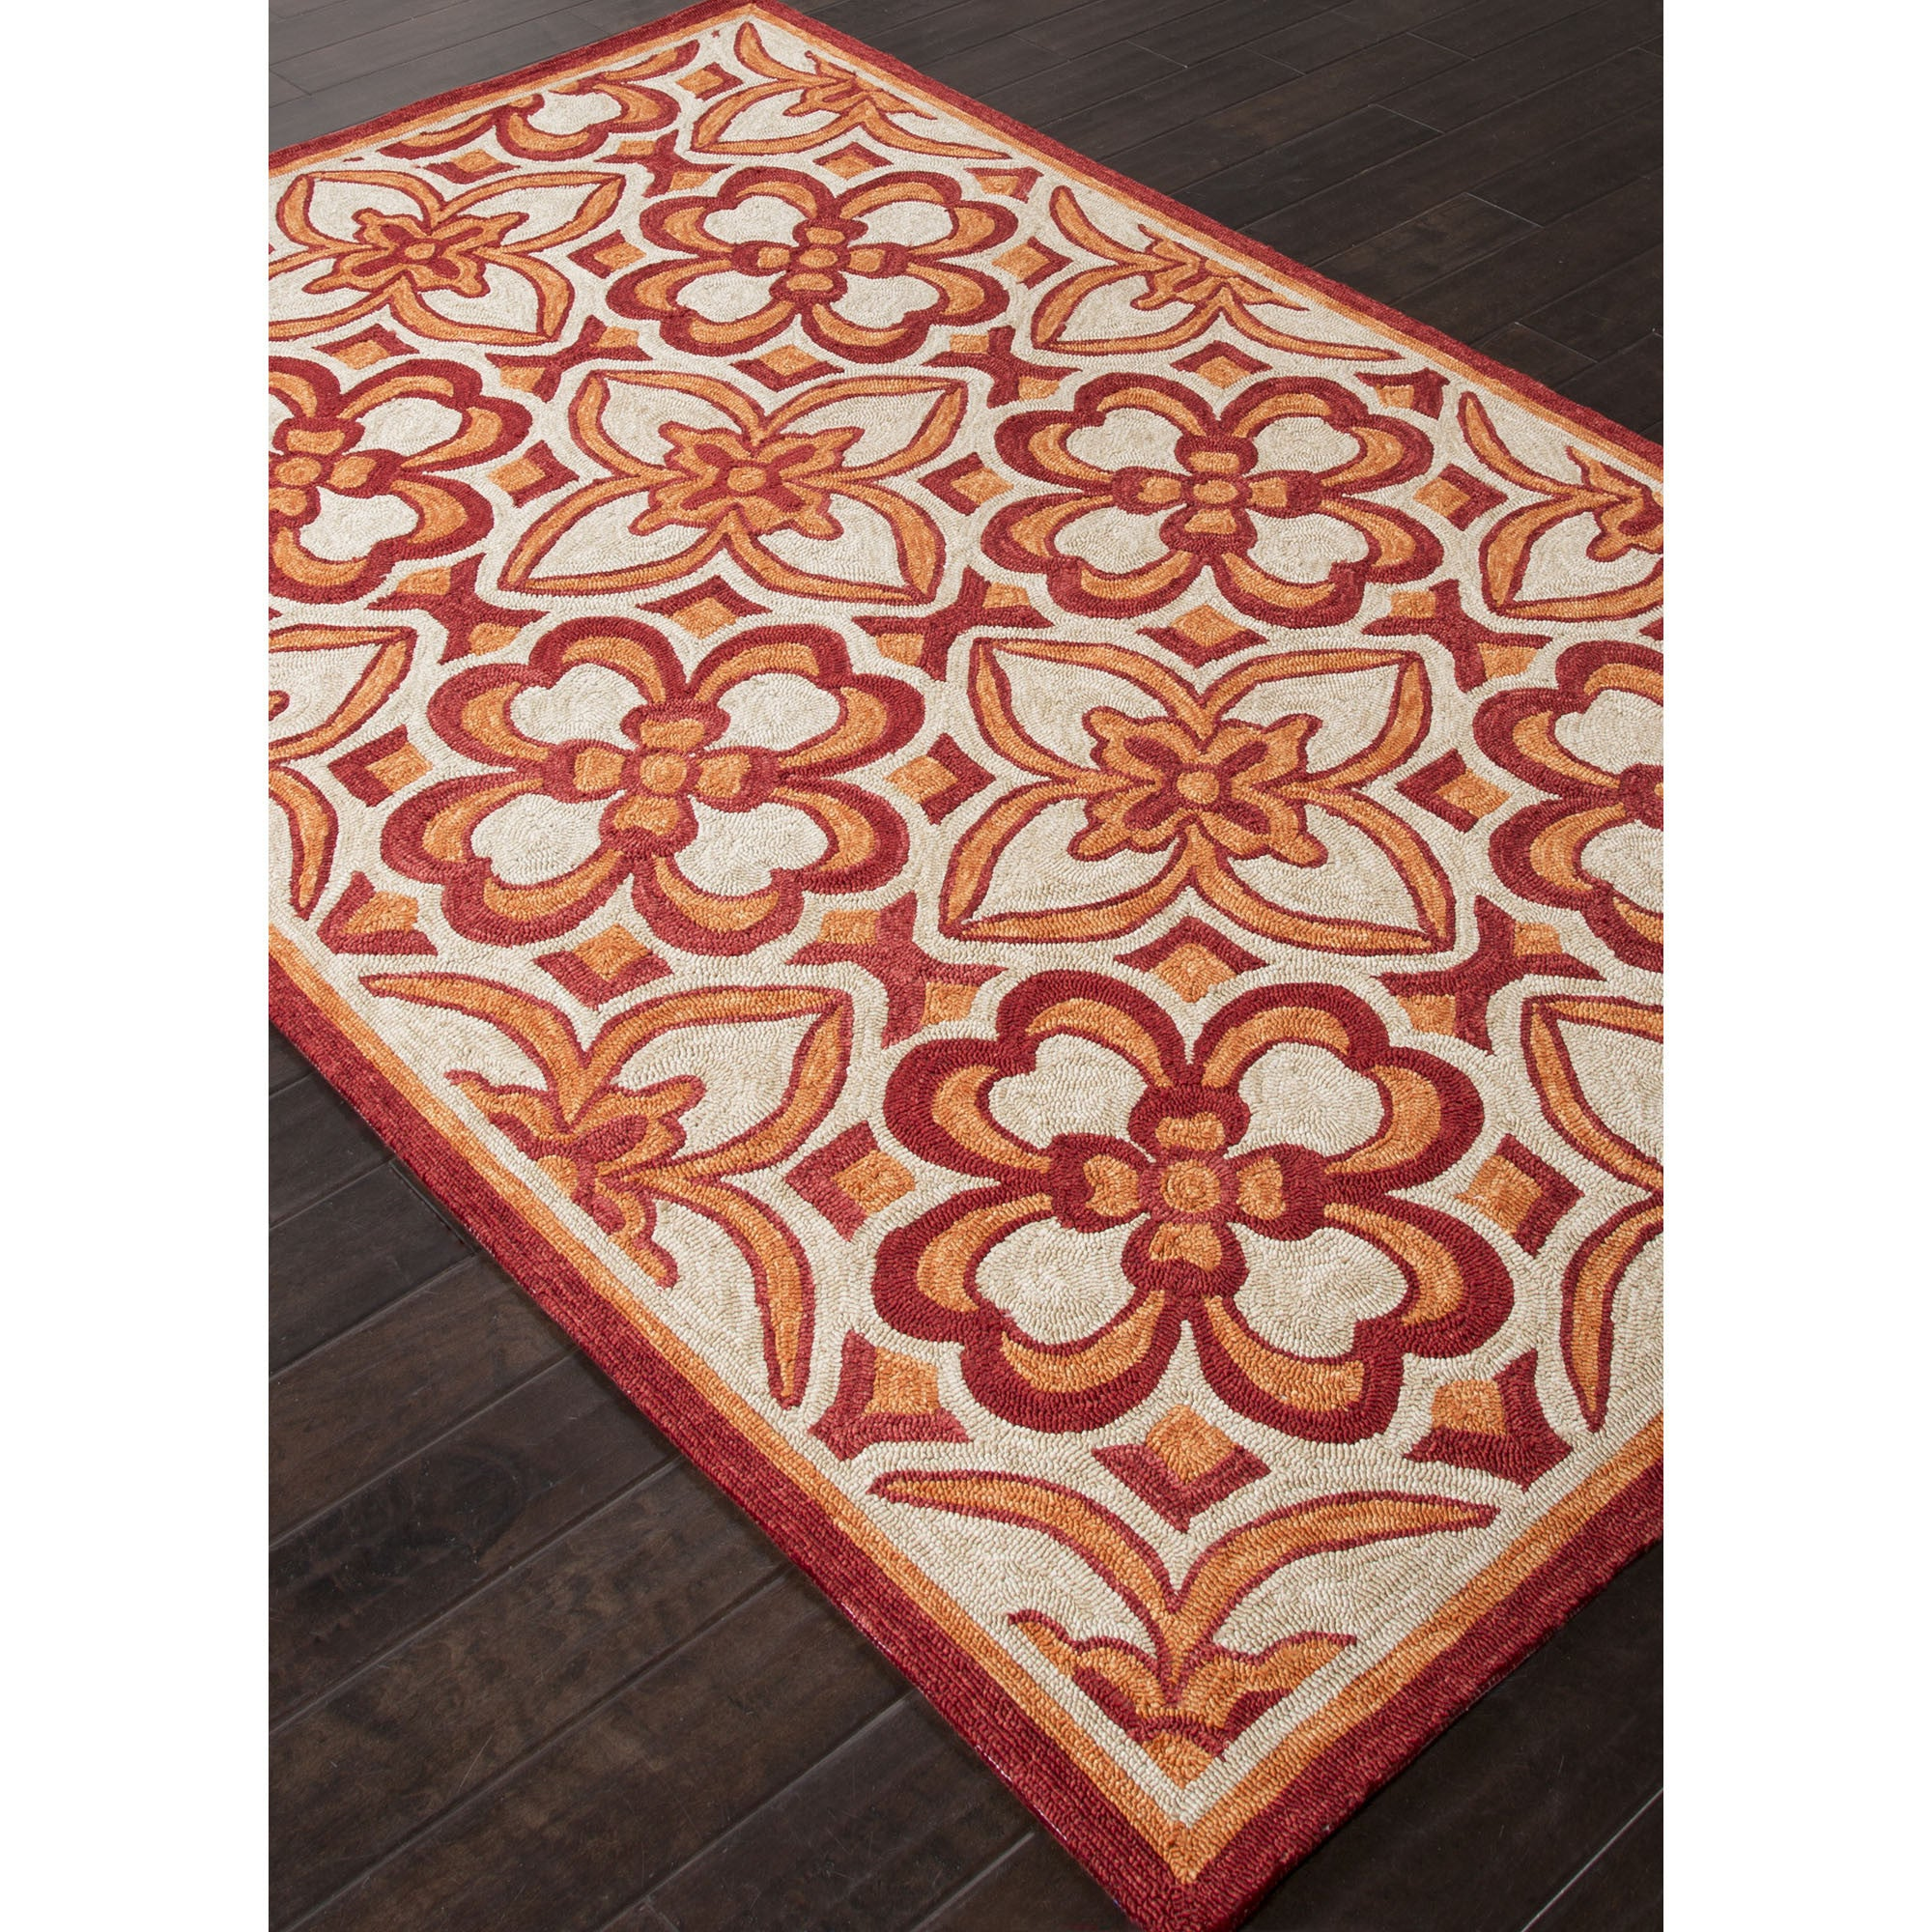 Jaipur Rugs IndoorOutdoor Moroccan Pattern Orange/Red